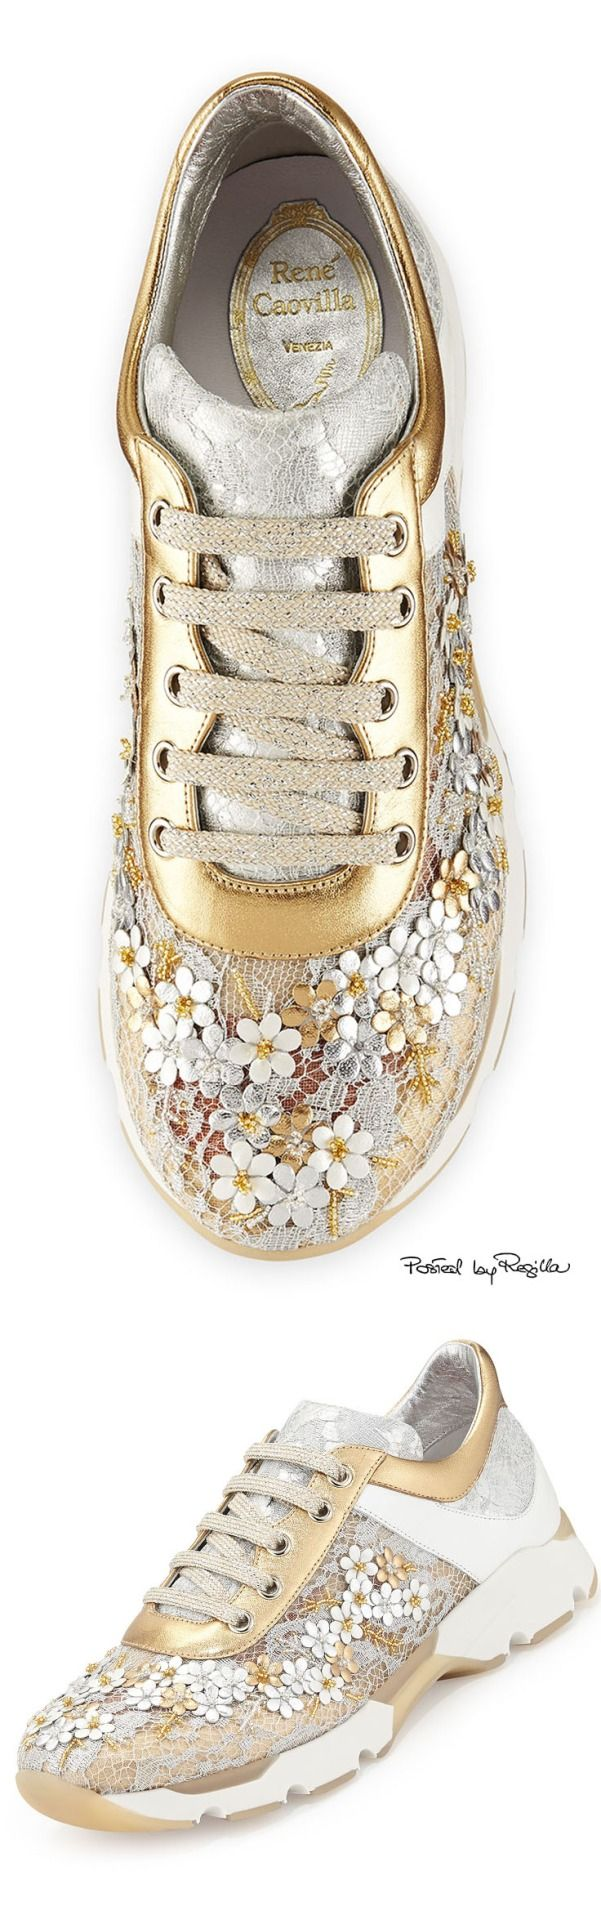 Rene Caovilla Metallic Floral Lace-Up Sneaker, Metallic/White                                                                                                                                                                                 More